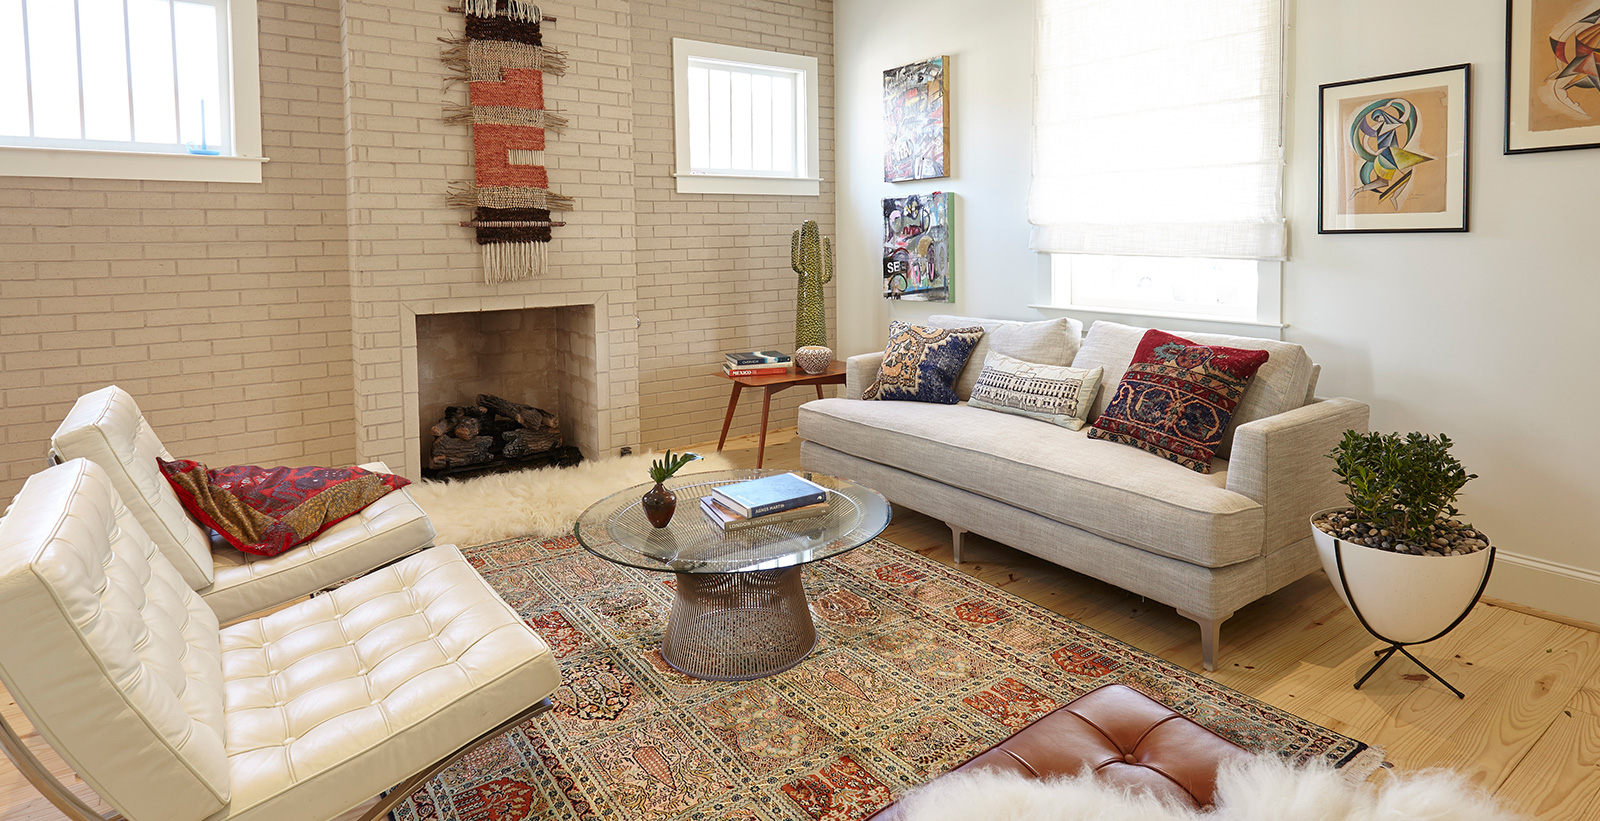 Bohemian styled living room with white on main walls, off white on brick wall with fireplace, light beige couch and cream leather chairs